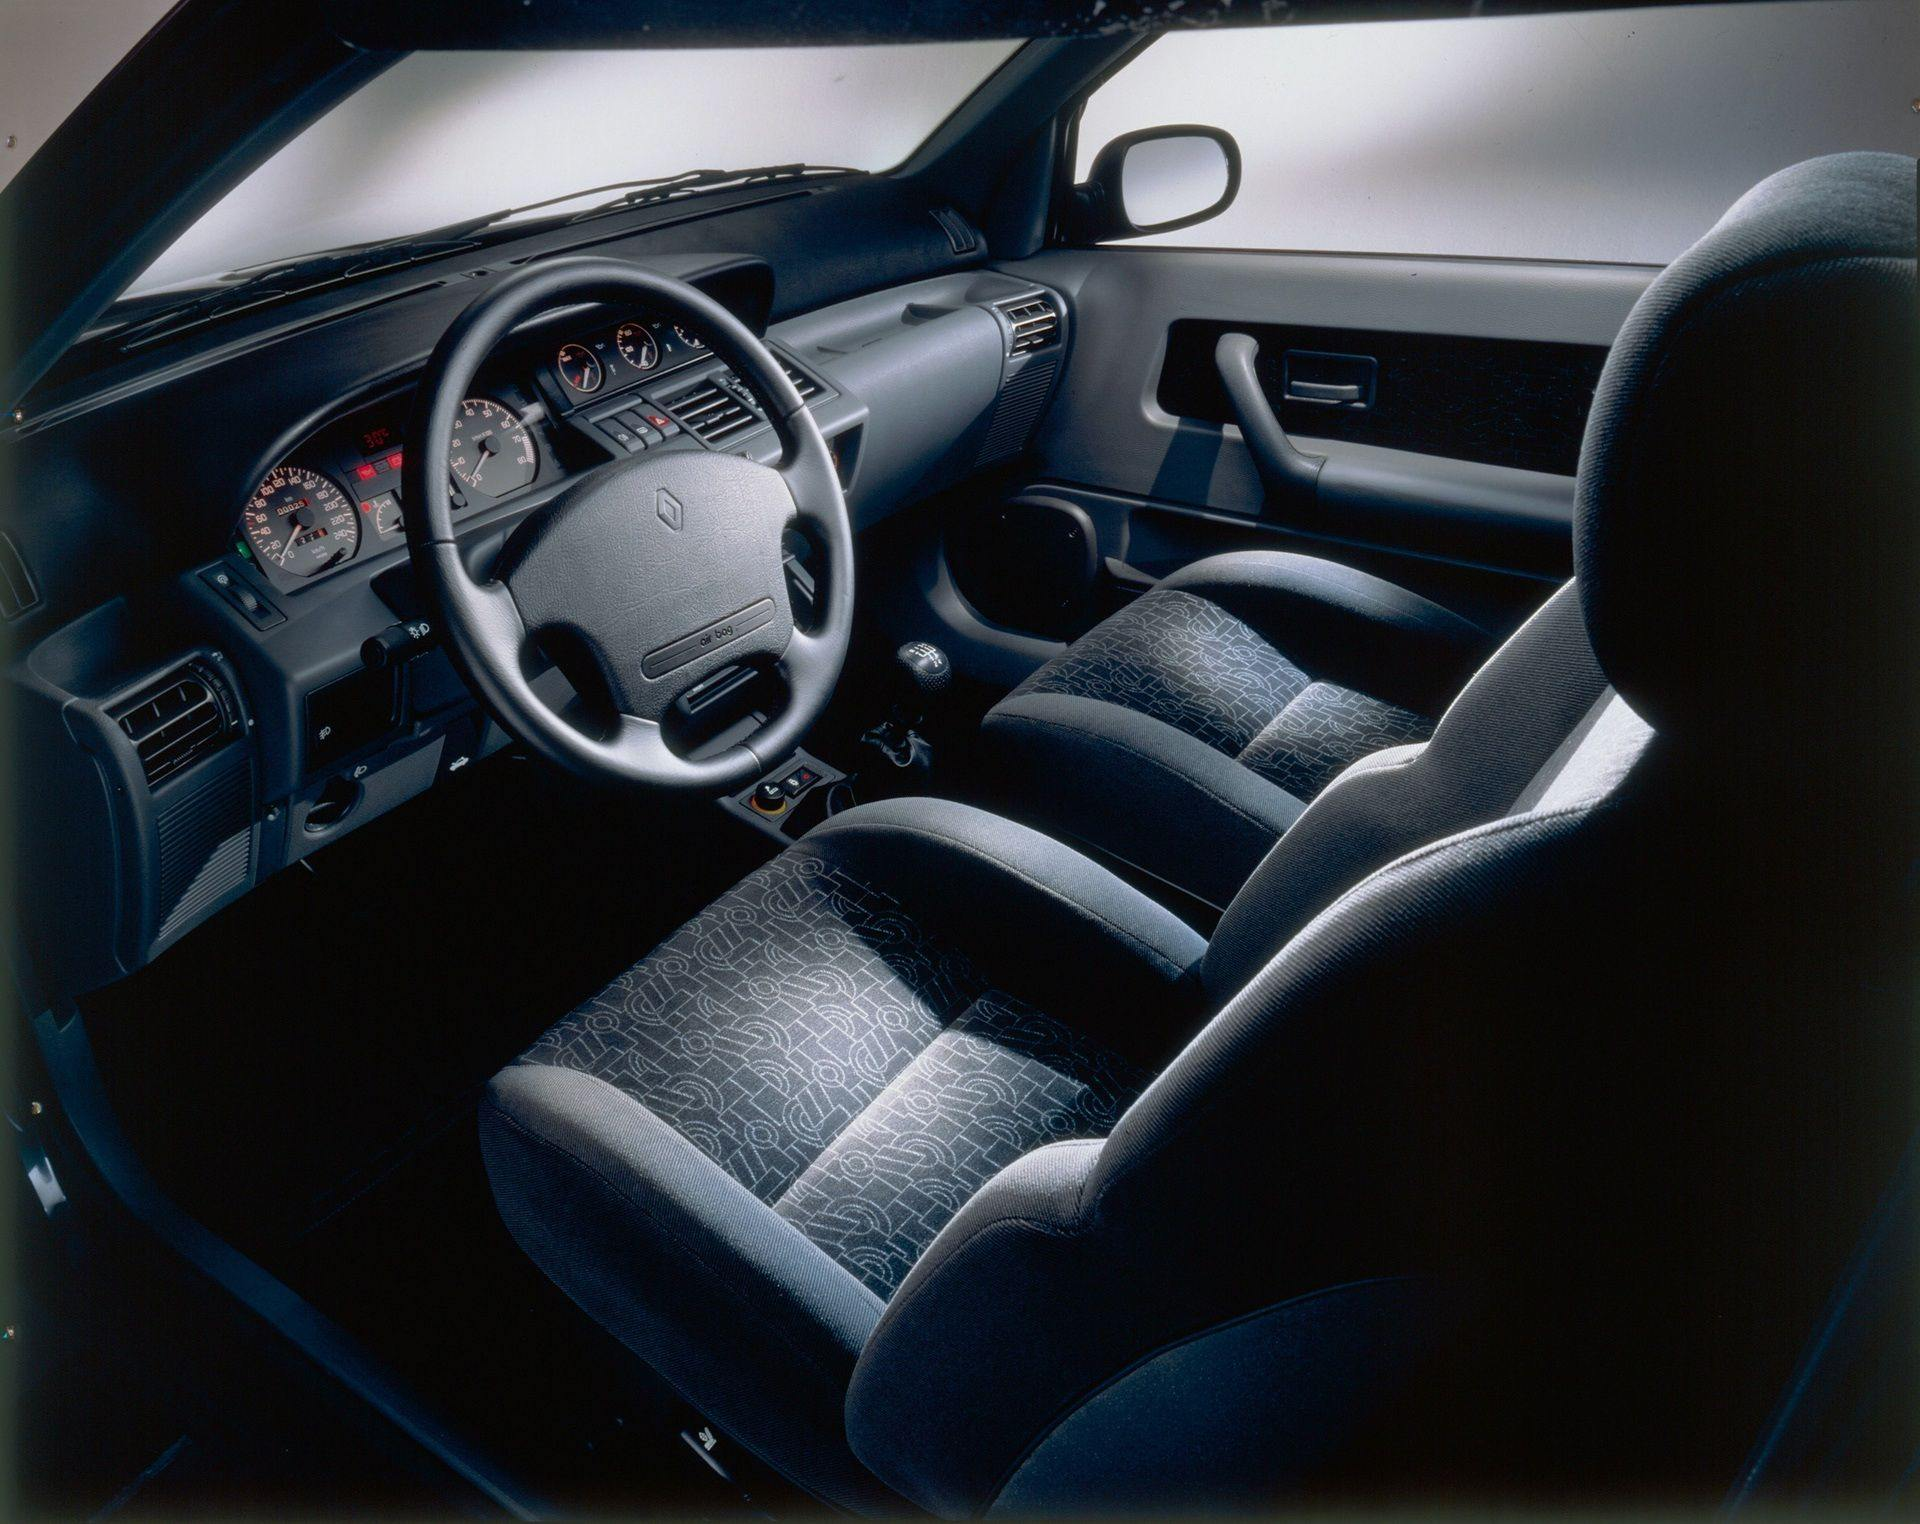 2020-30-years-of-Renault-CLIO-Renault-CLIO-I-1990-1999-18